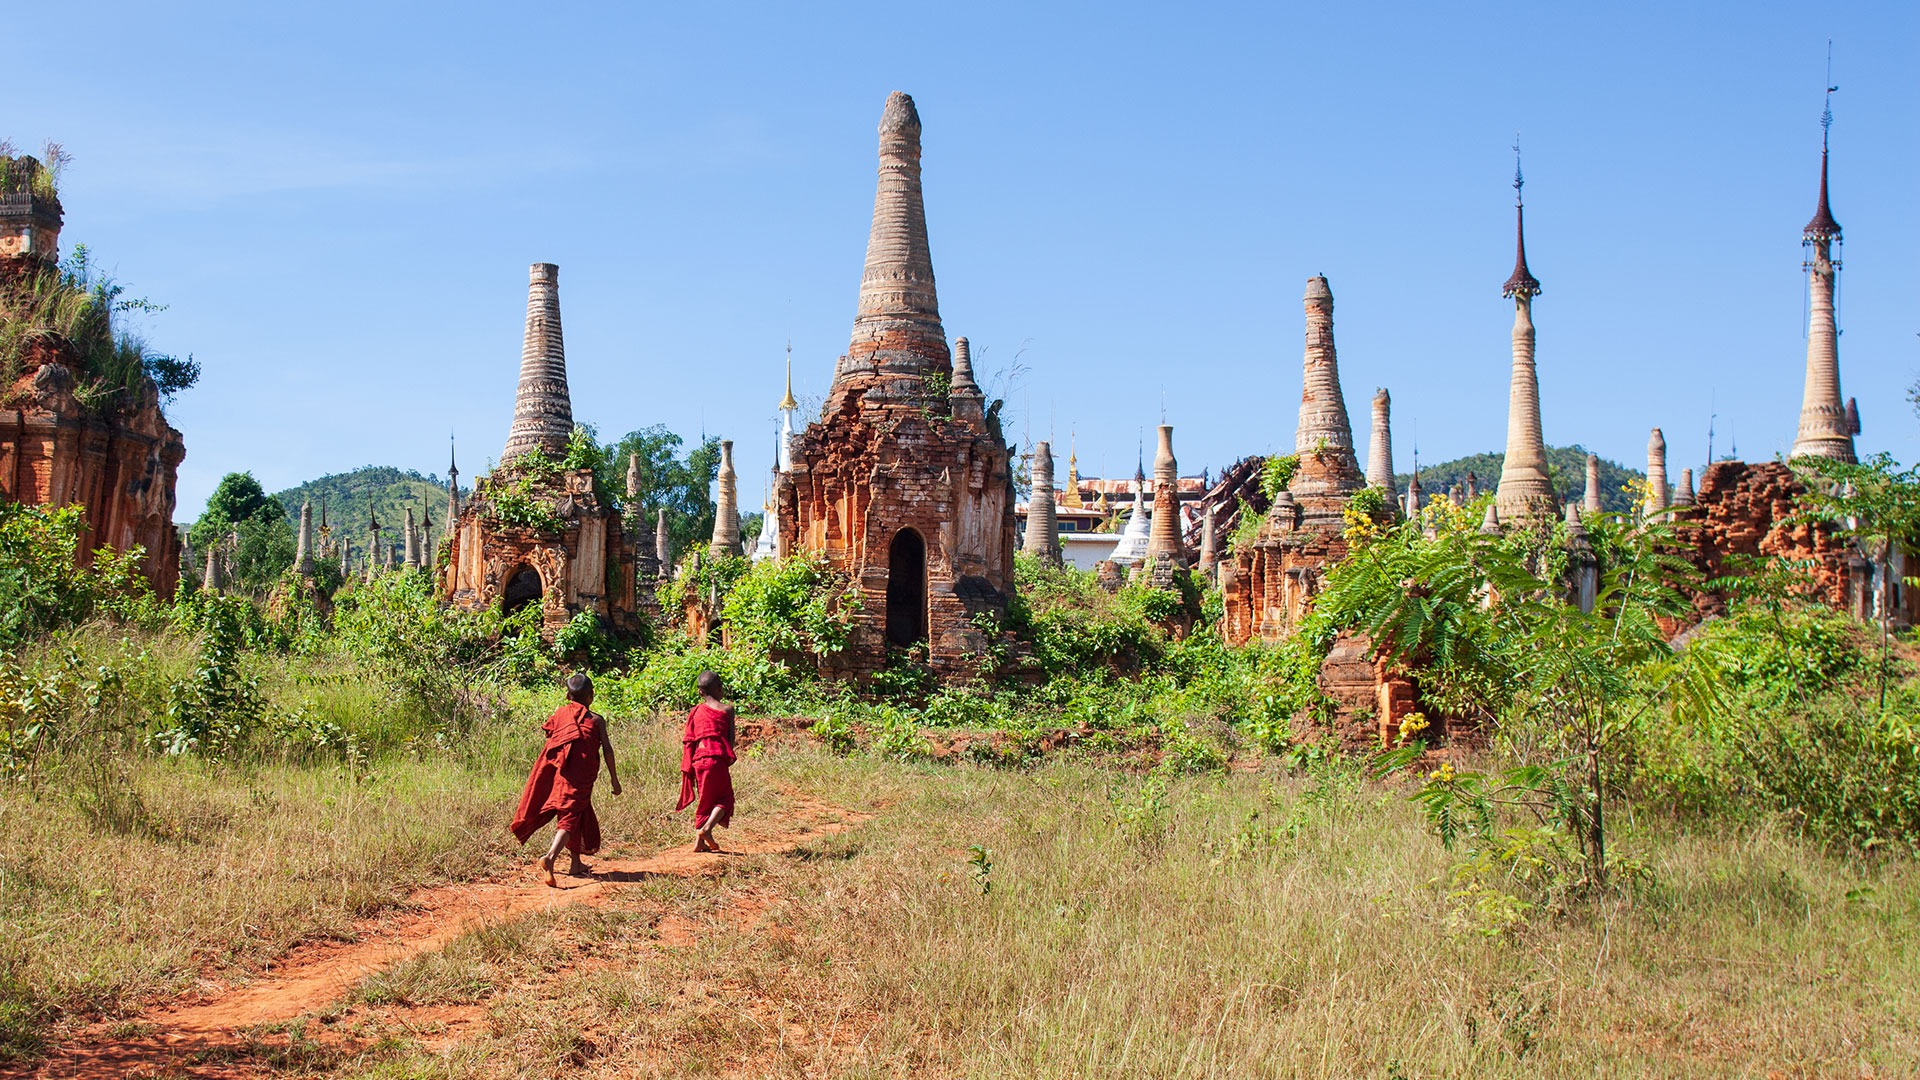 Young monks wander the Plain of Temples in Bagan, Myanmar